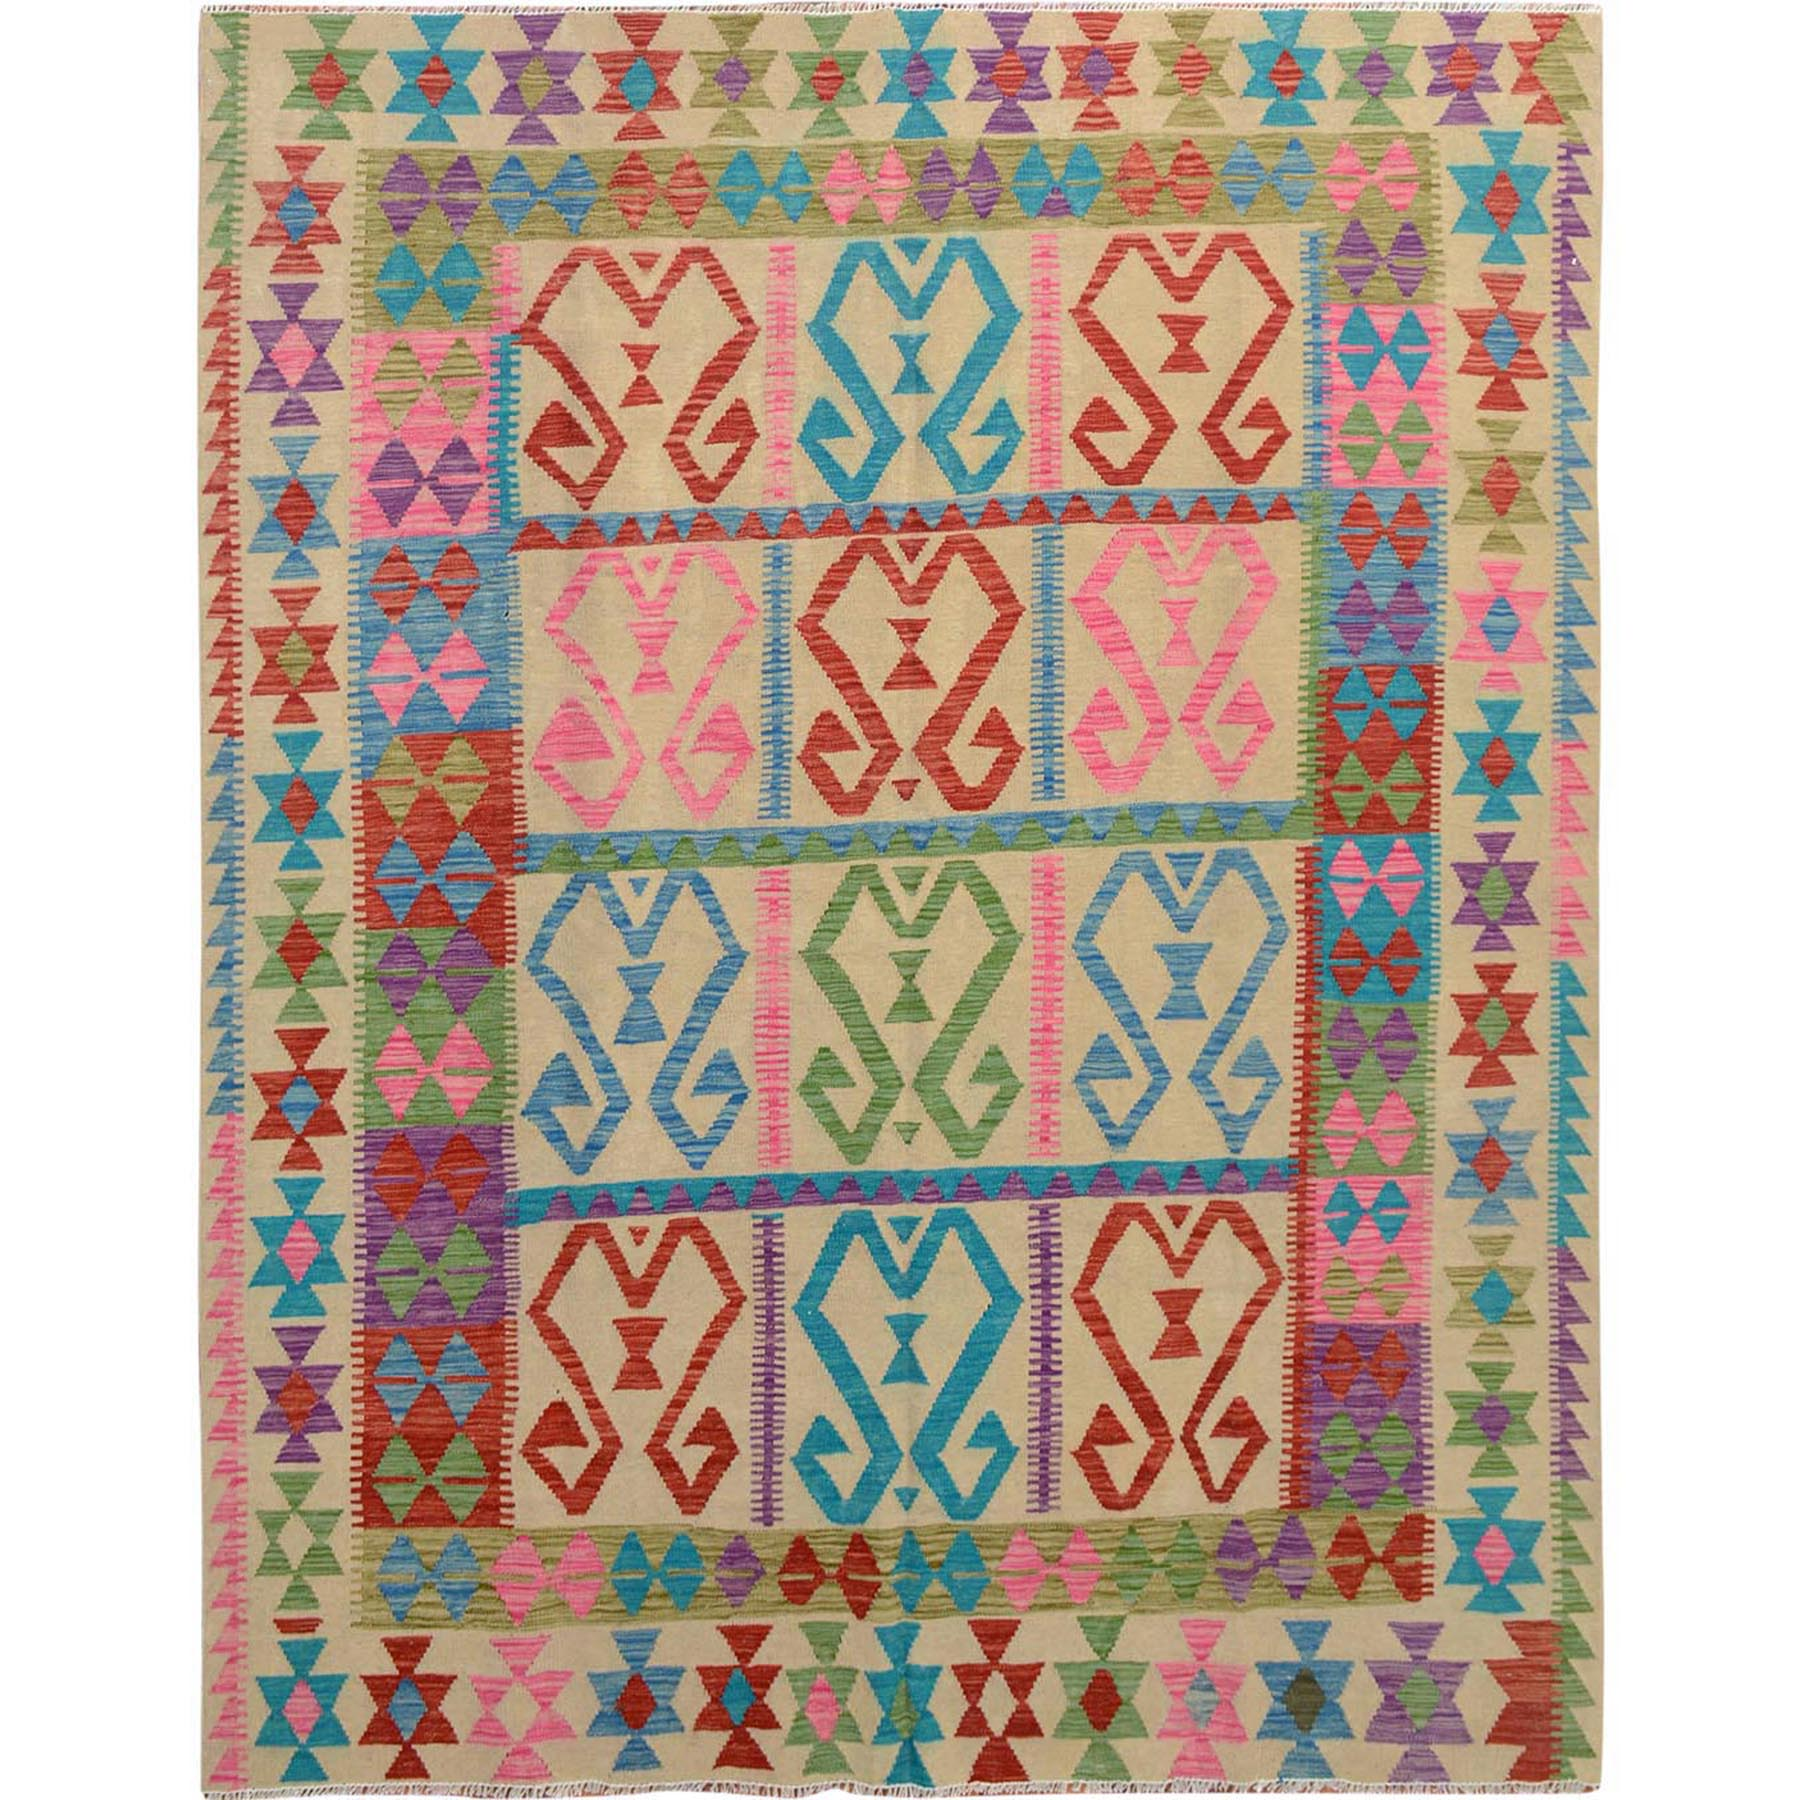 "6'9""x8'5"" Colorful Reversible Afghan Kilim Vegetable Dyes Pure Wool Hand Woven Oriental Rug"